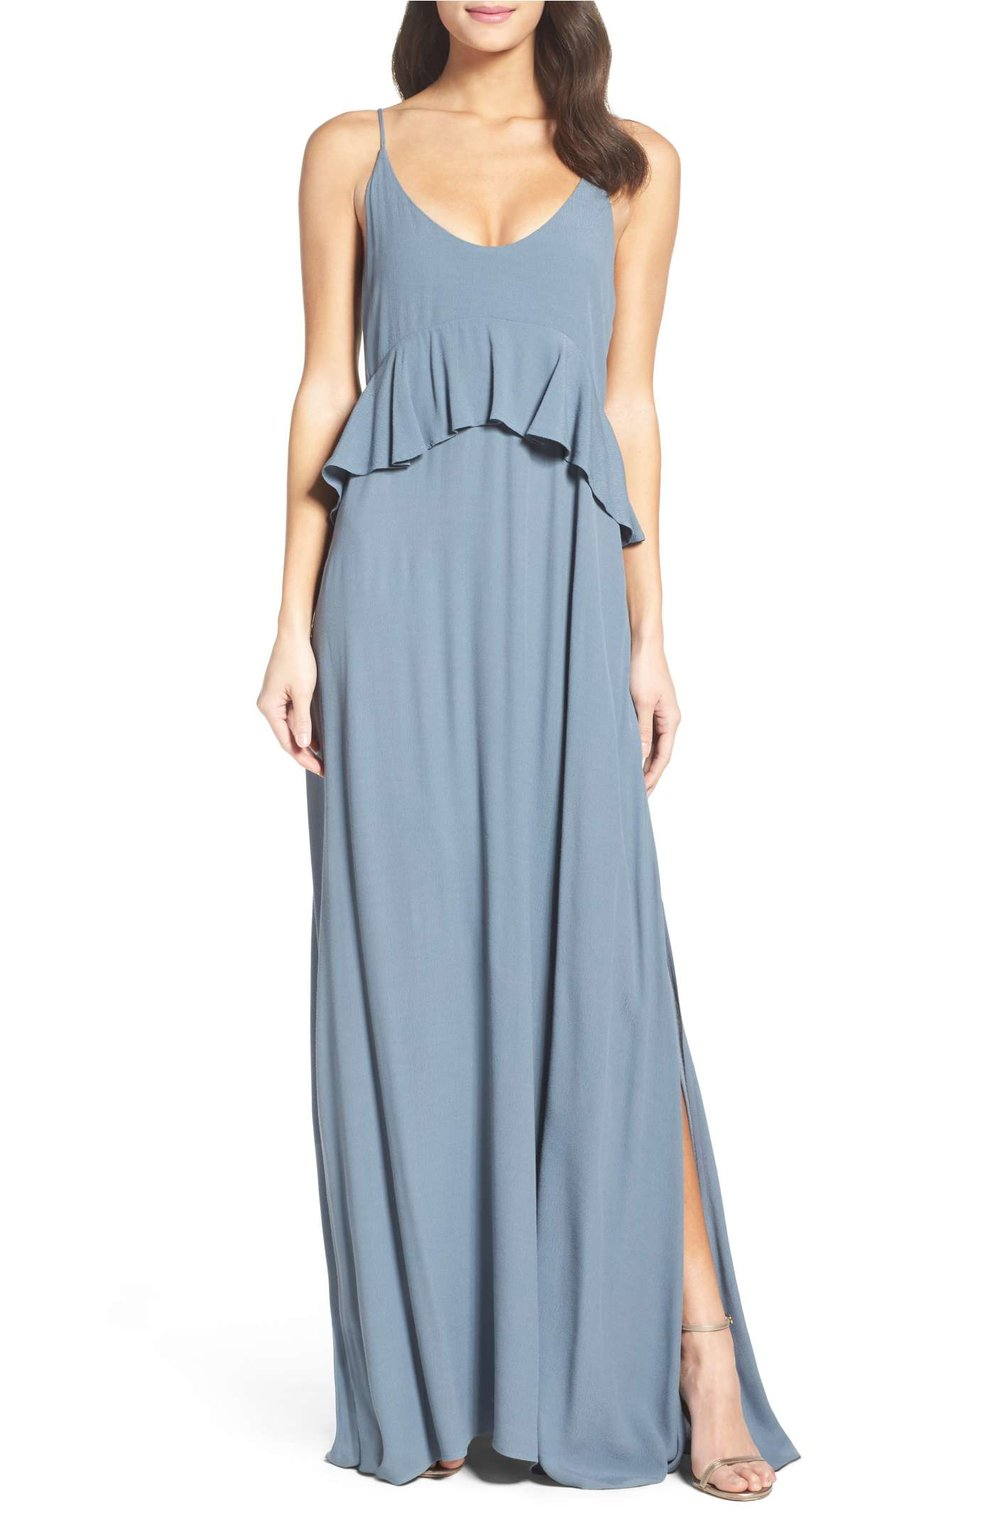 Roe + May , Nordstrom $198, Sizes XS-XL